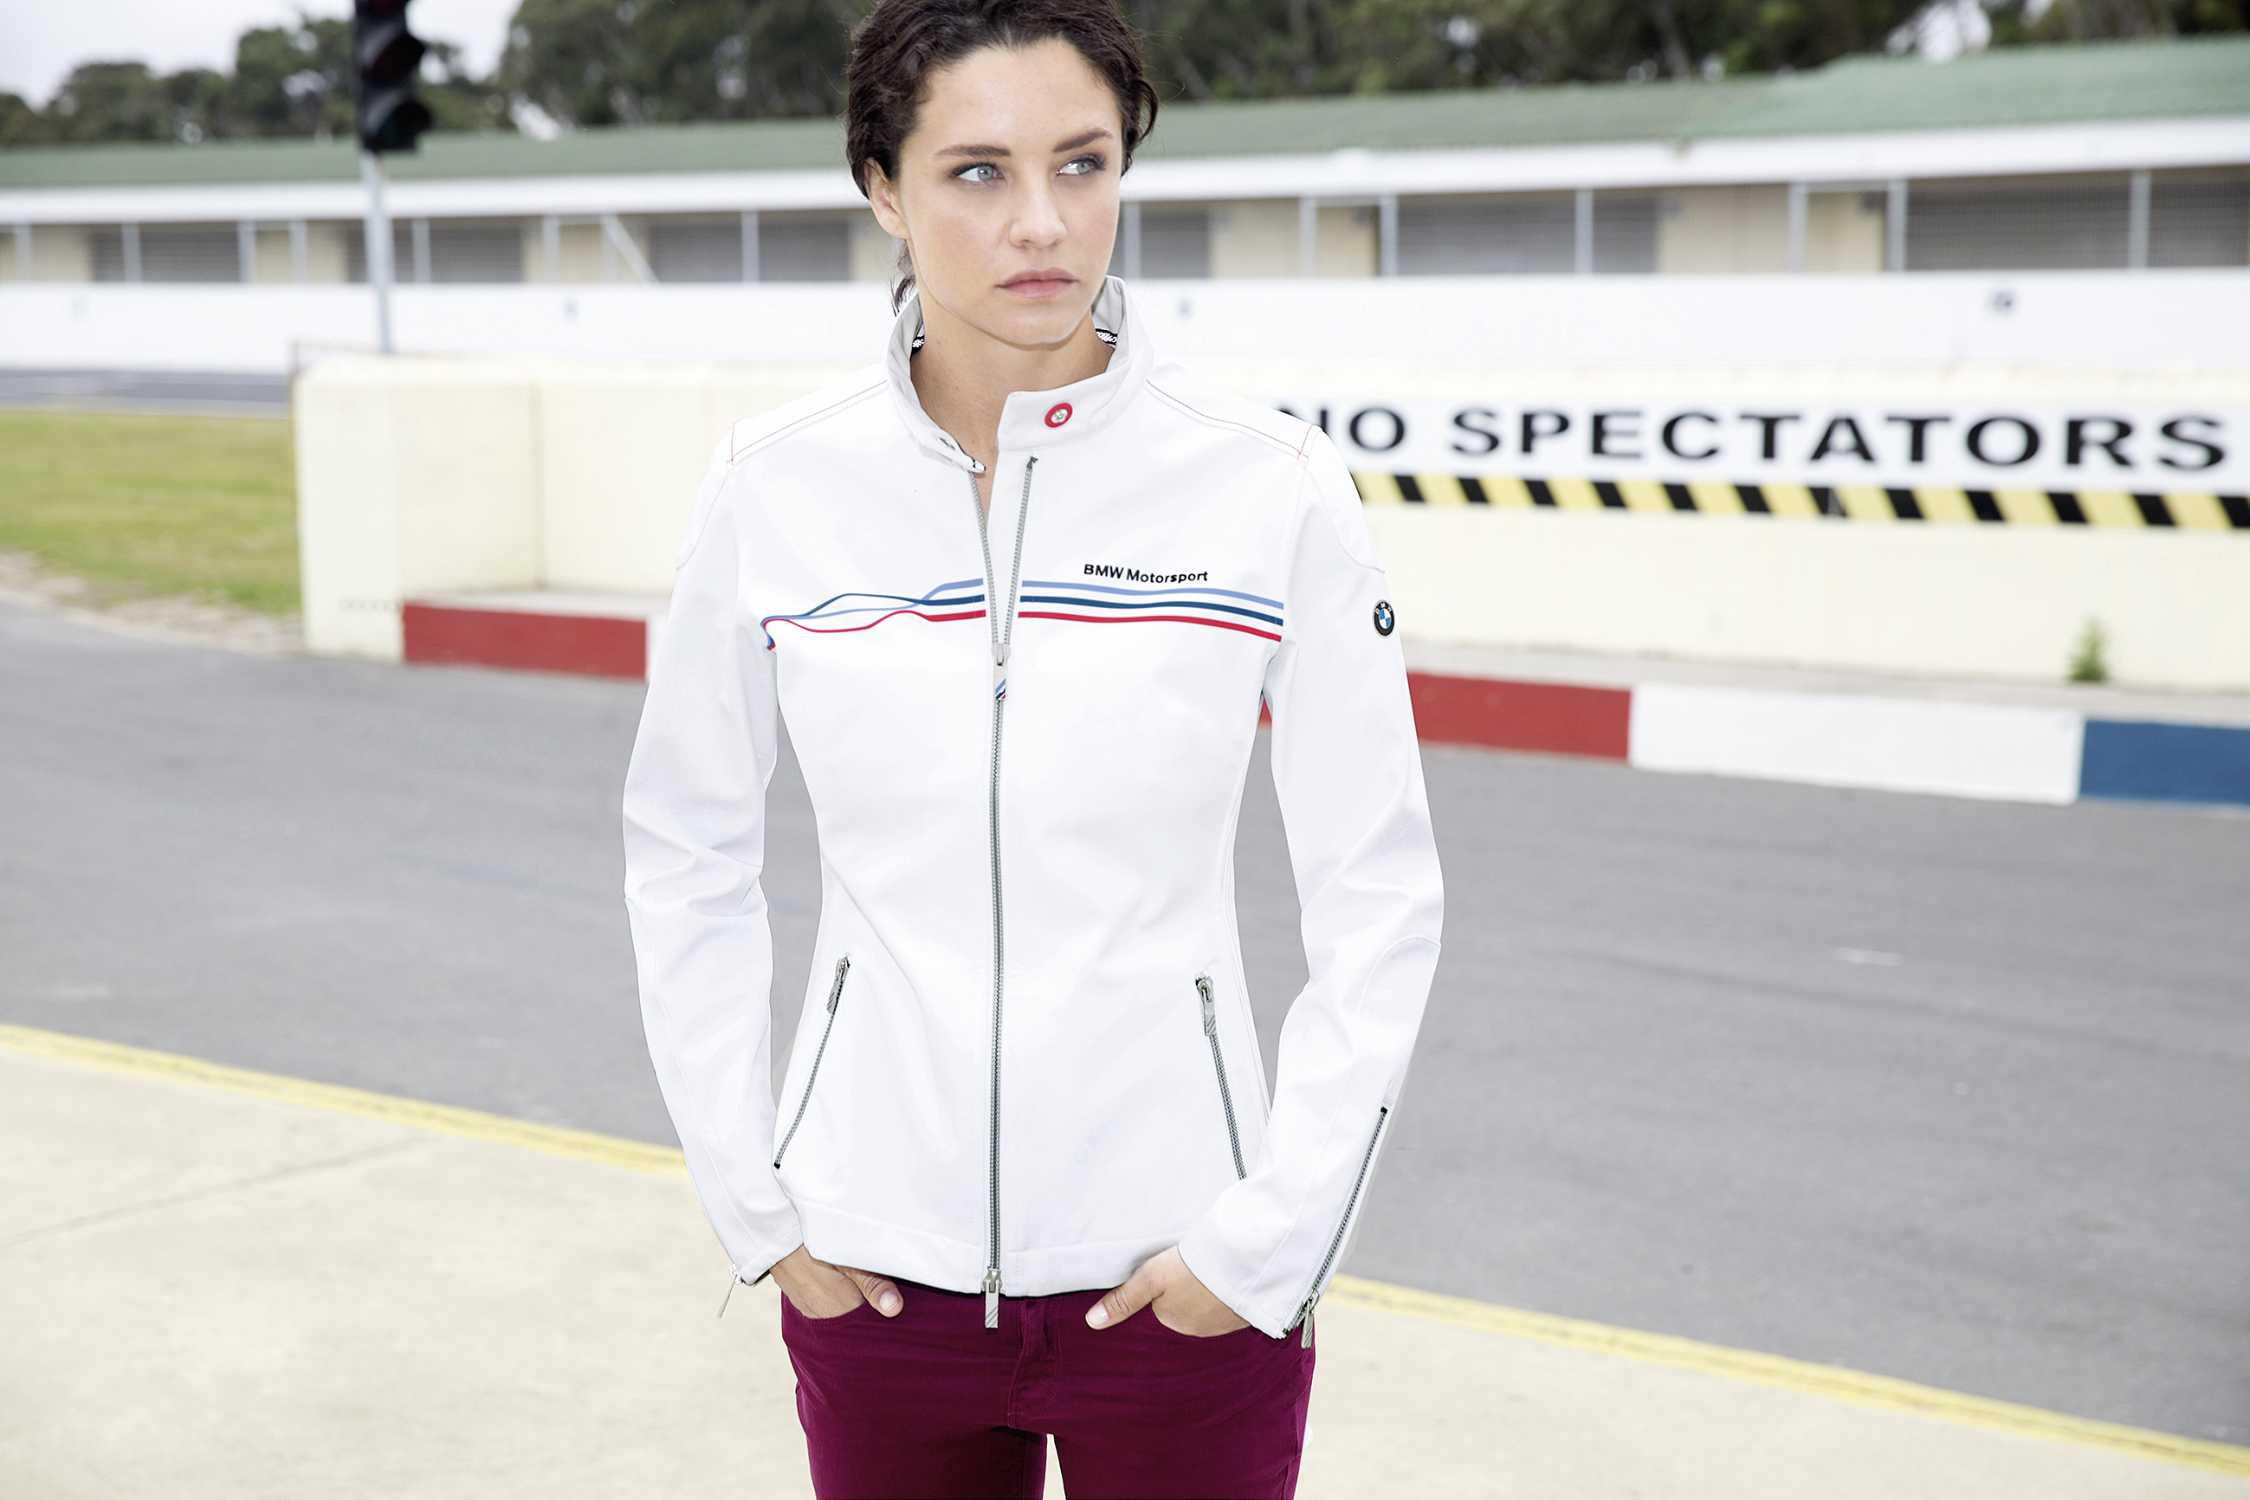 Shell Bmw Bmw JacketFor CollectionSoft Shell Motorsport JacketFor Motorsport CollectionSoft qSGUzMLjVp